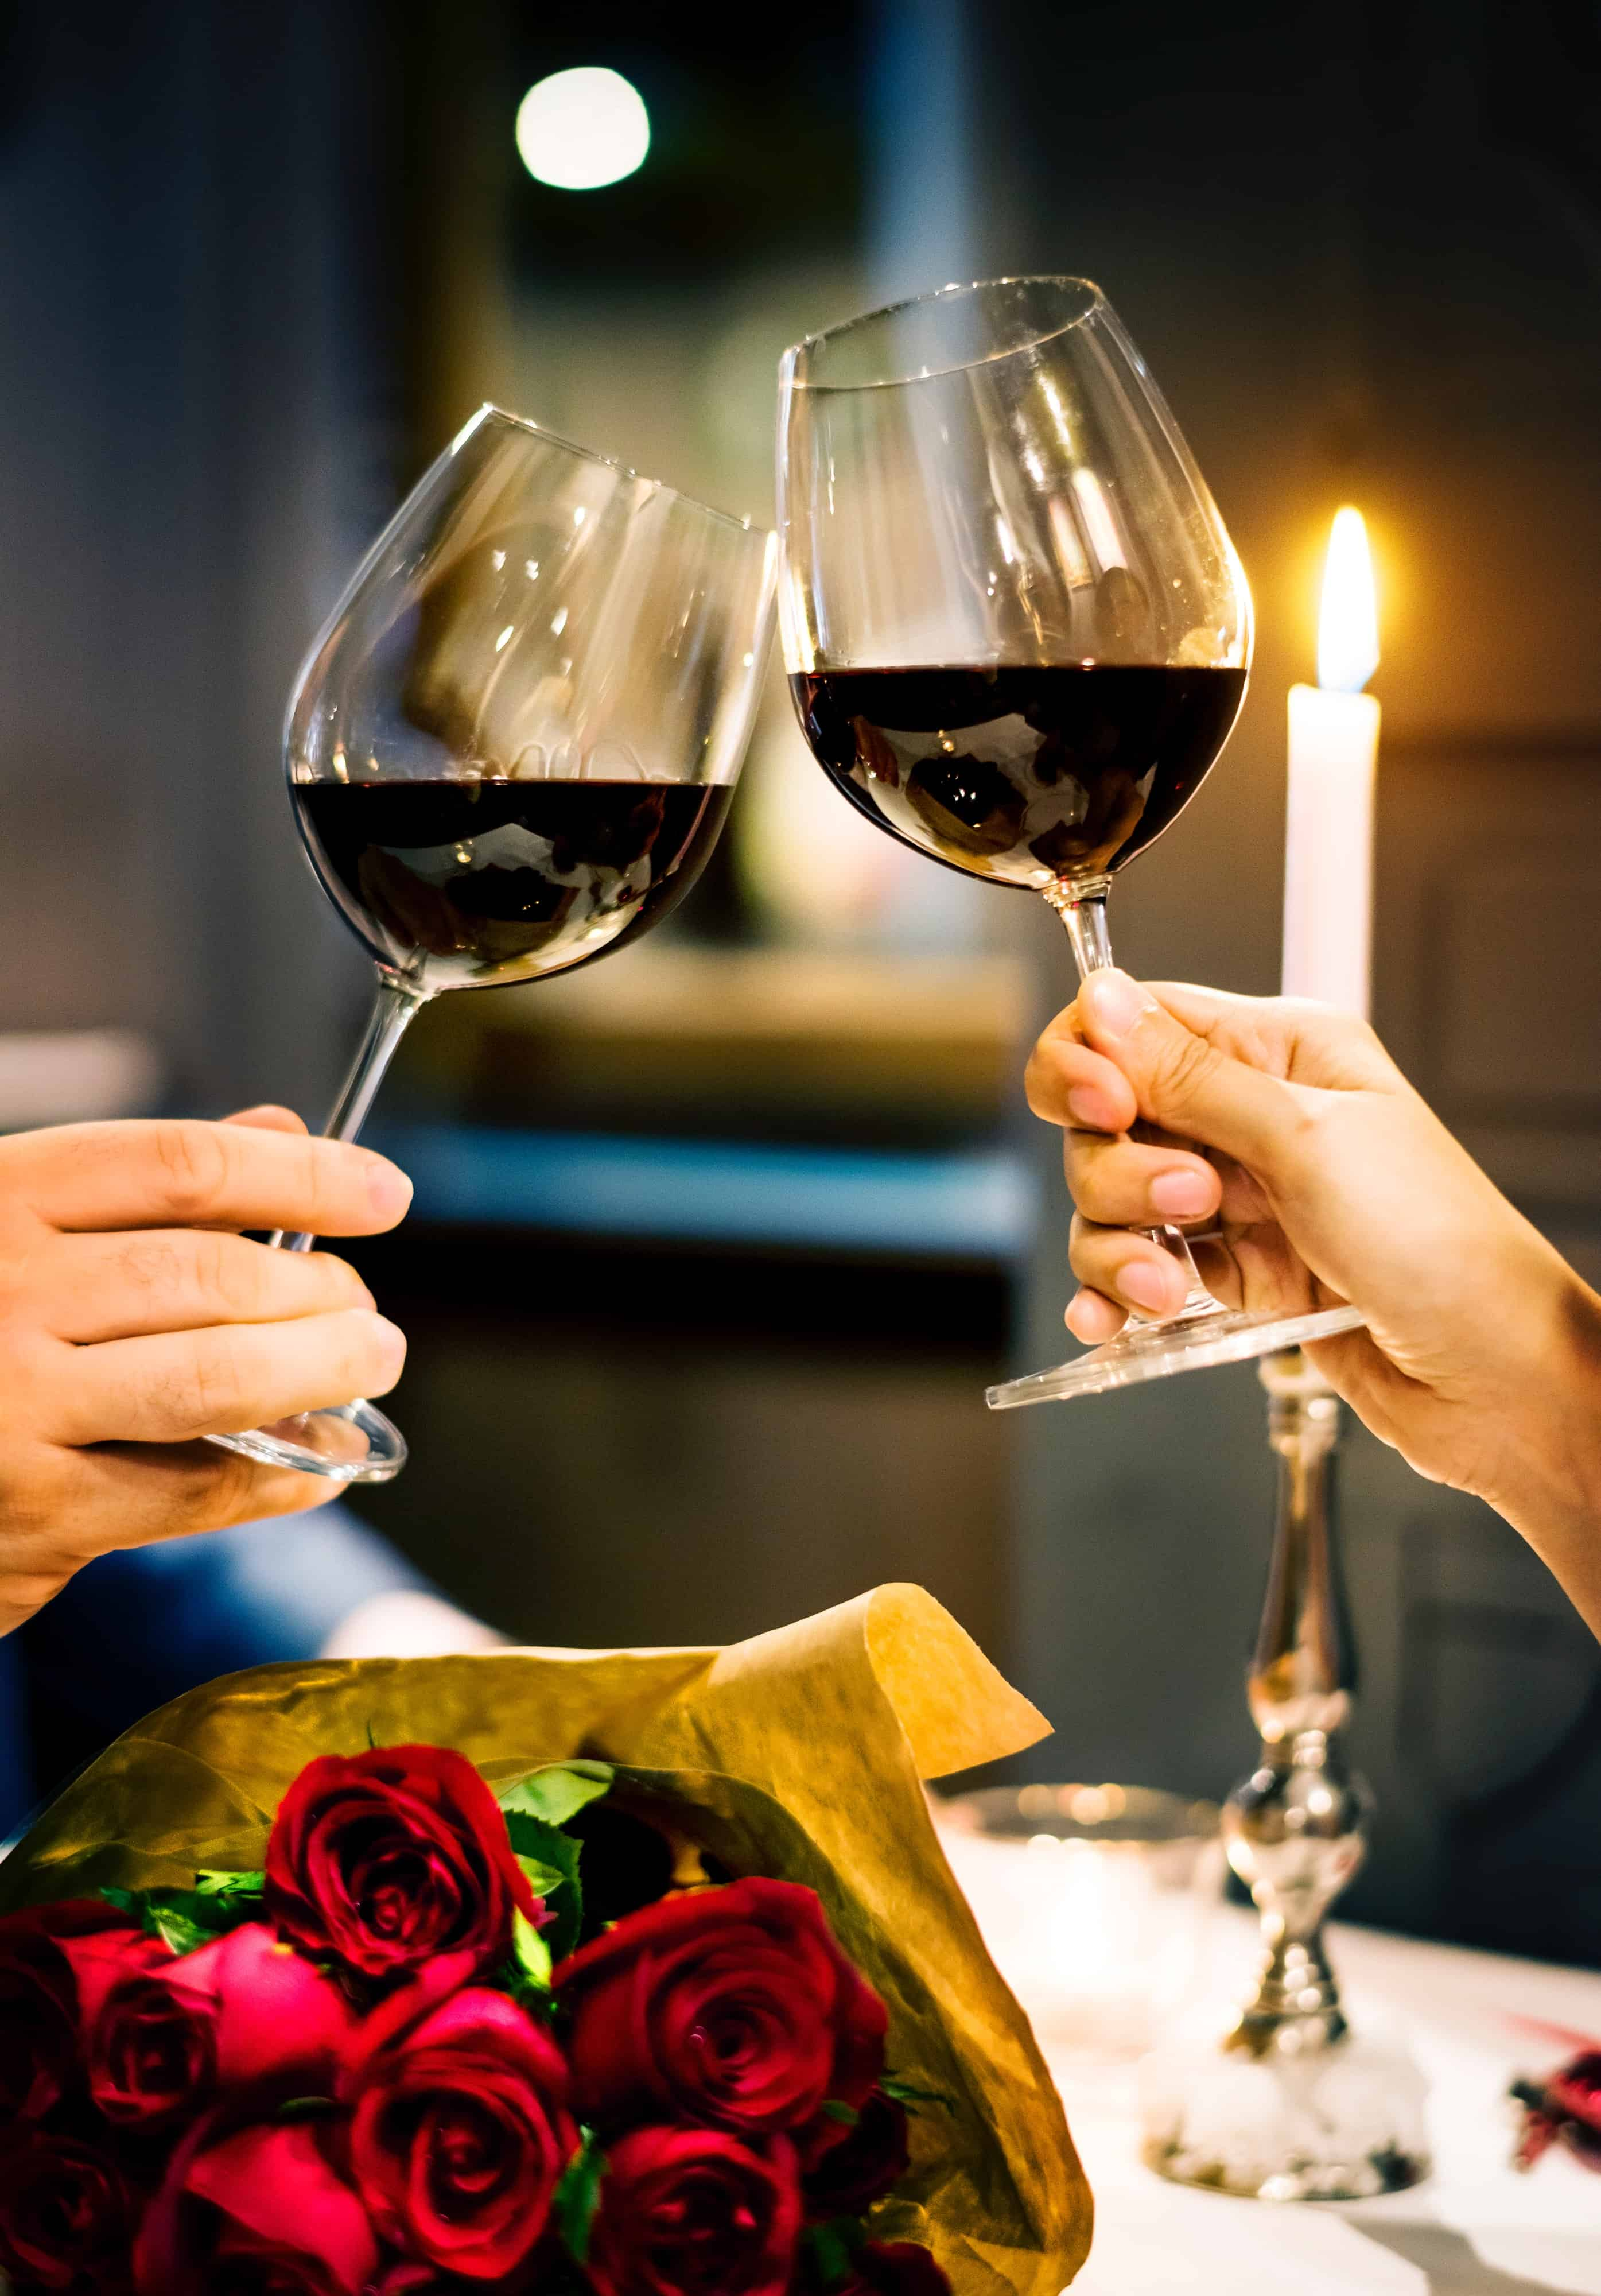 Wine as an anniversary gift is a great choice